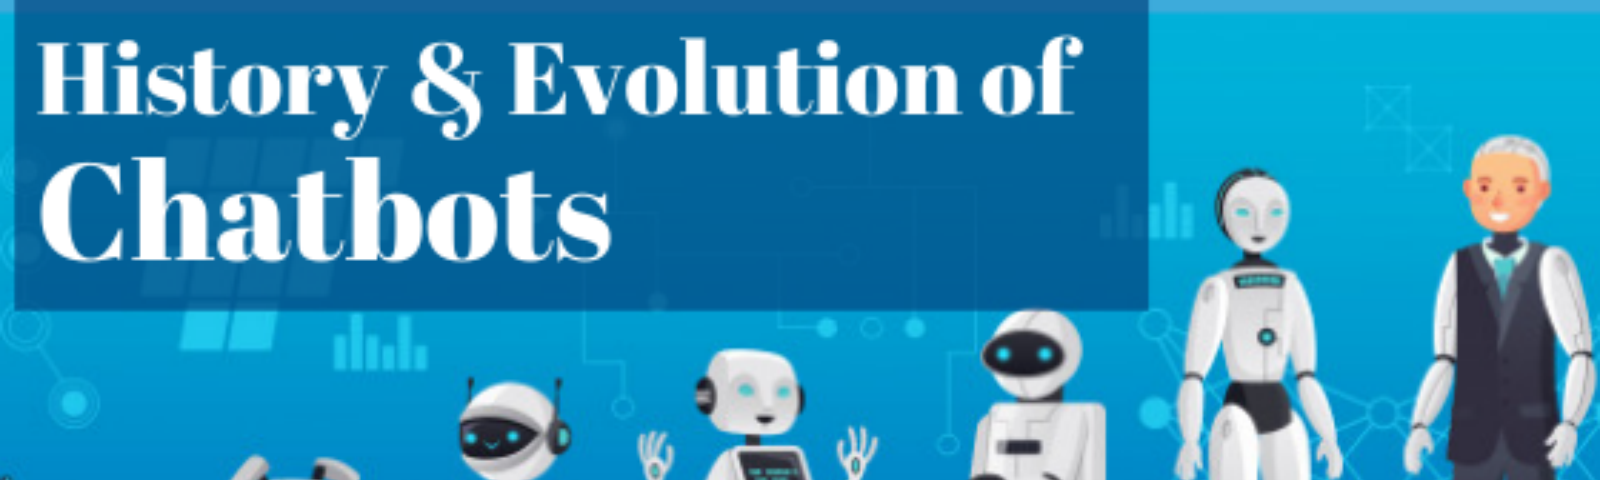 History and Evolution of chatbots.